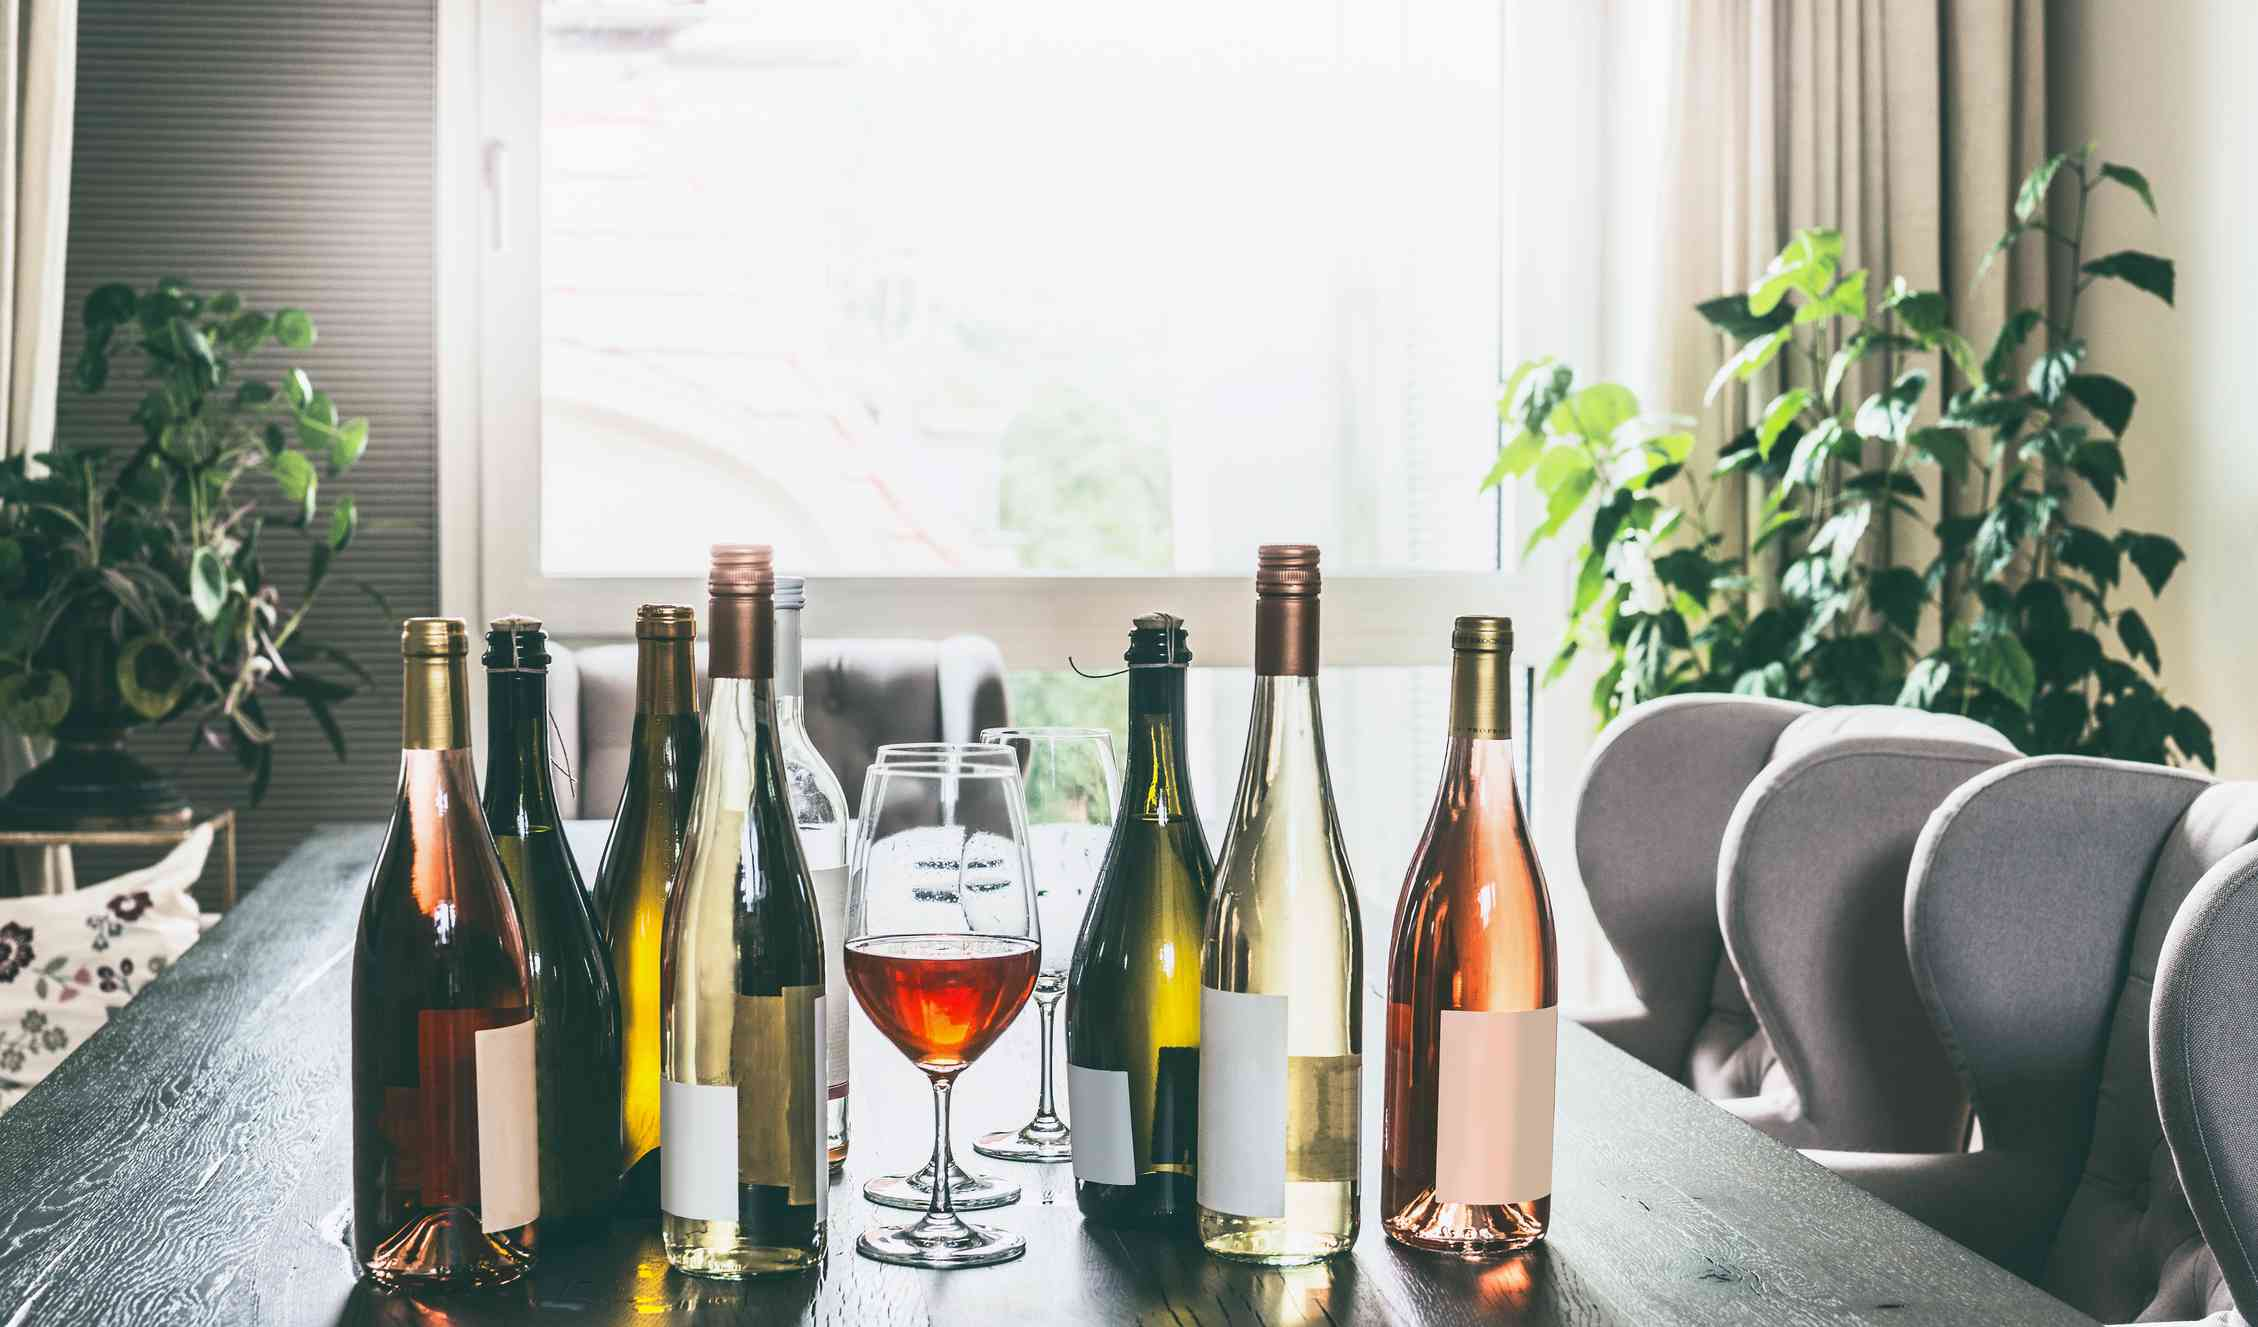 A selection of wine bottles on a dining room table